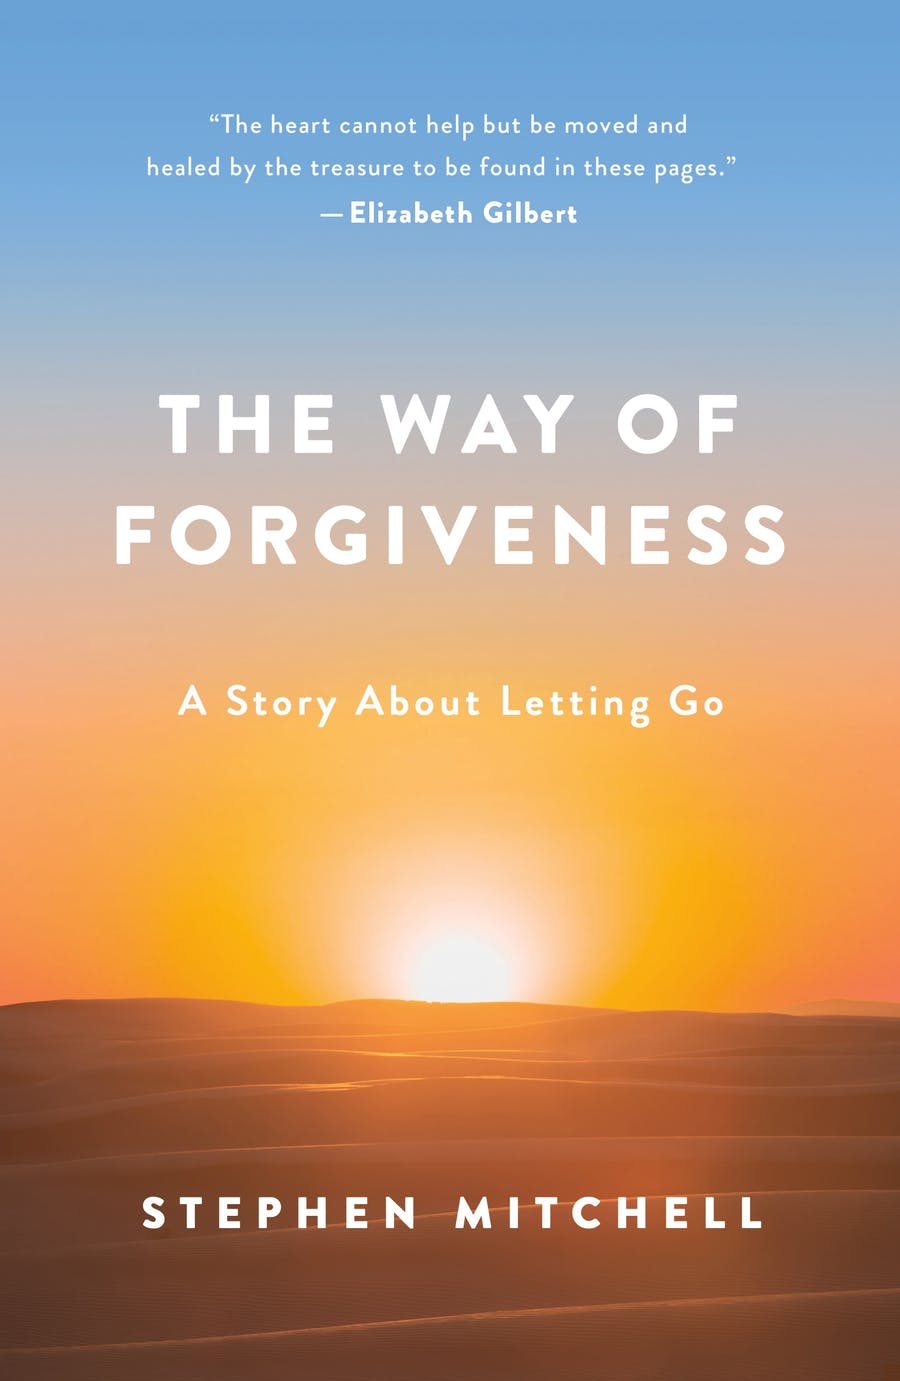 The Way of Forgiveness by Stephen Mitchell